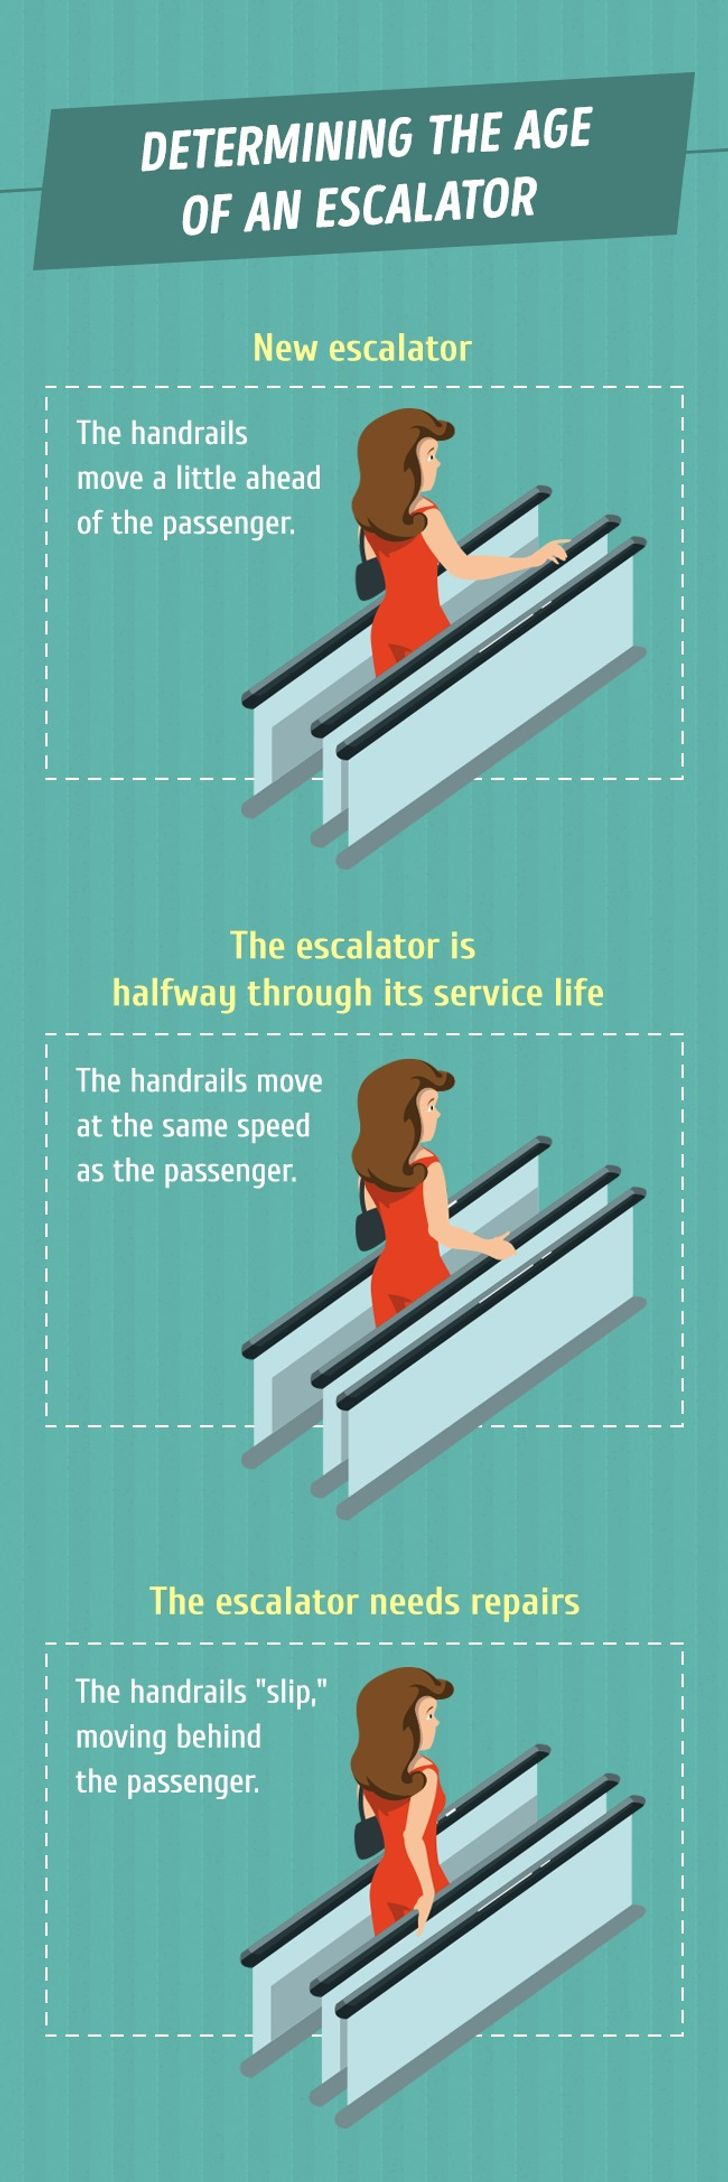 This is why the handrails move faster than the escalator on the subway